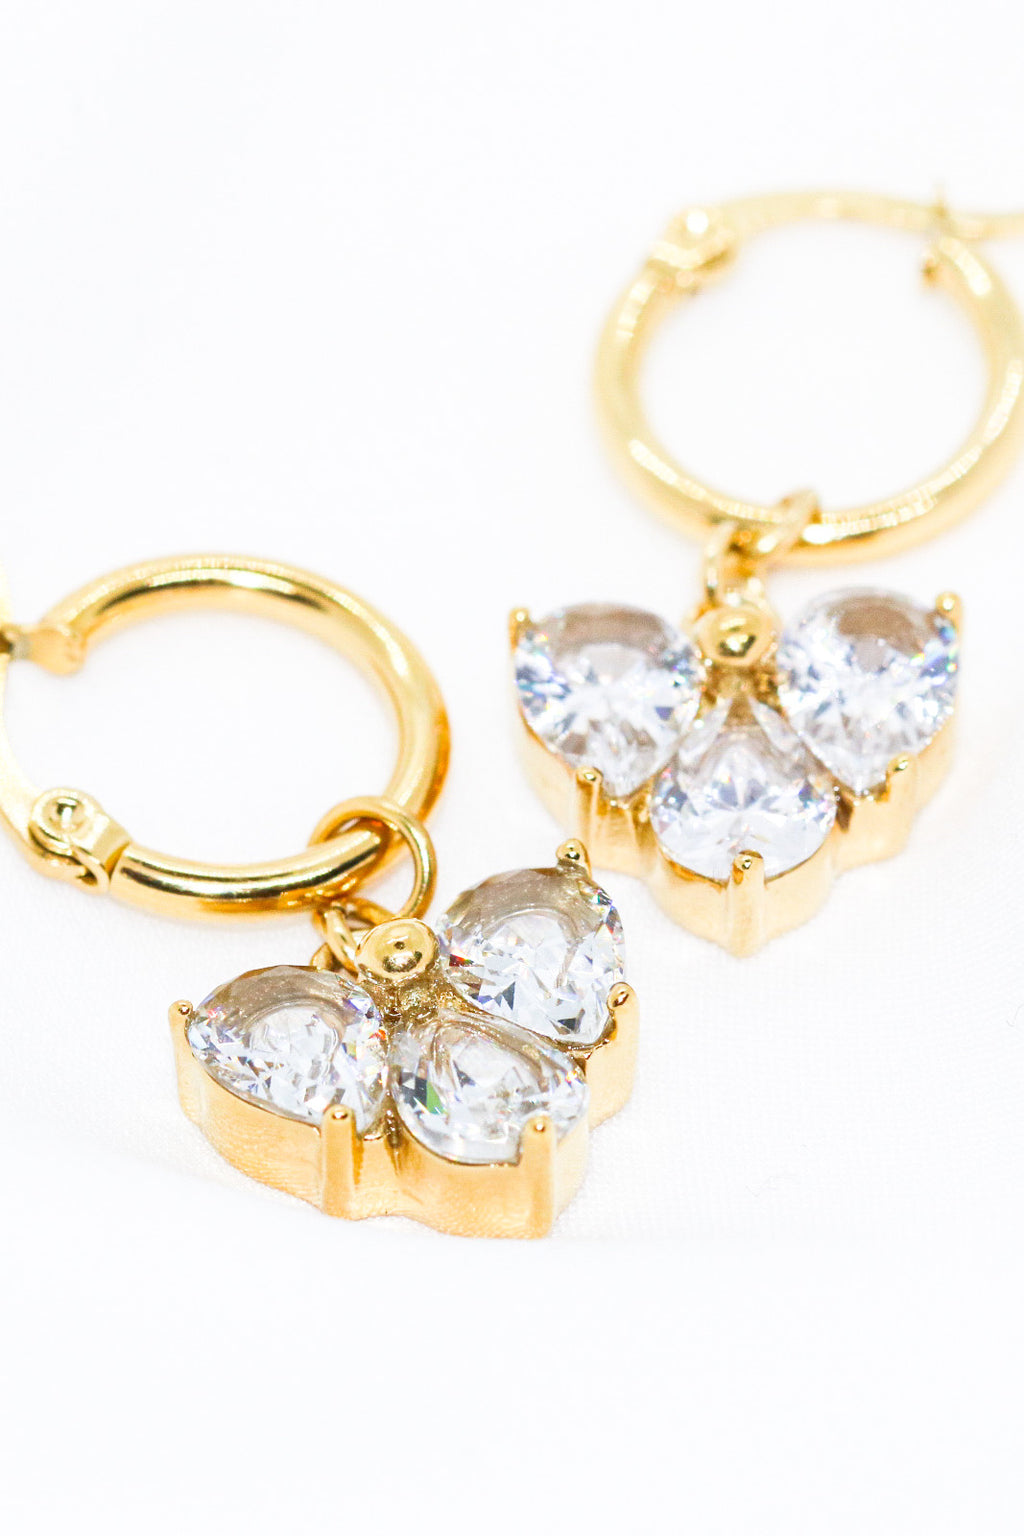 CRYSTAL HEART HOOPS - Taimana Boutique